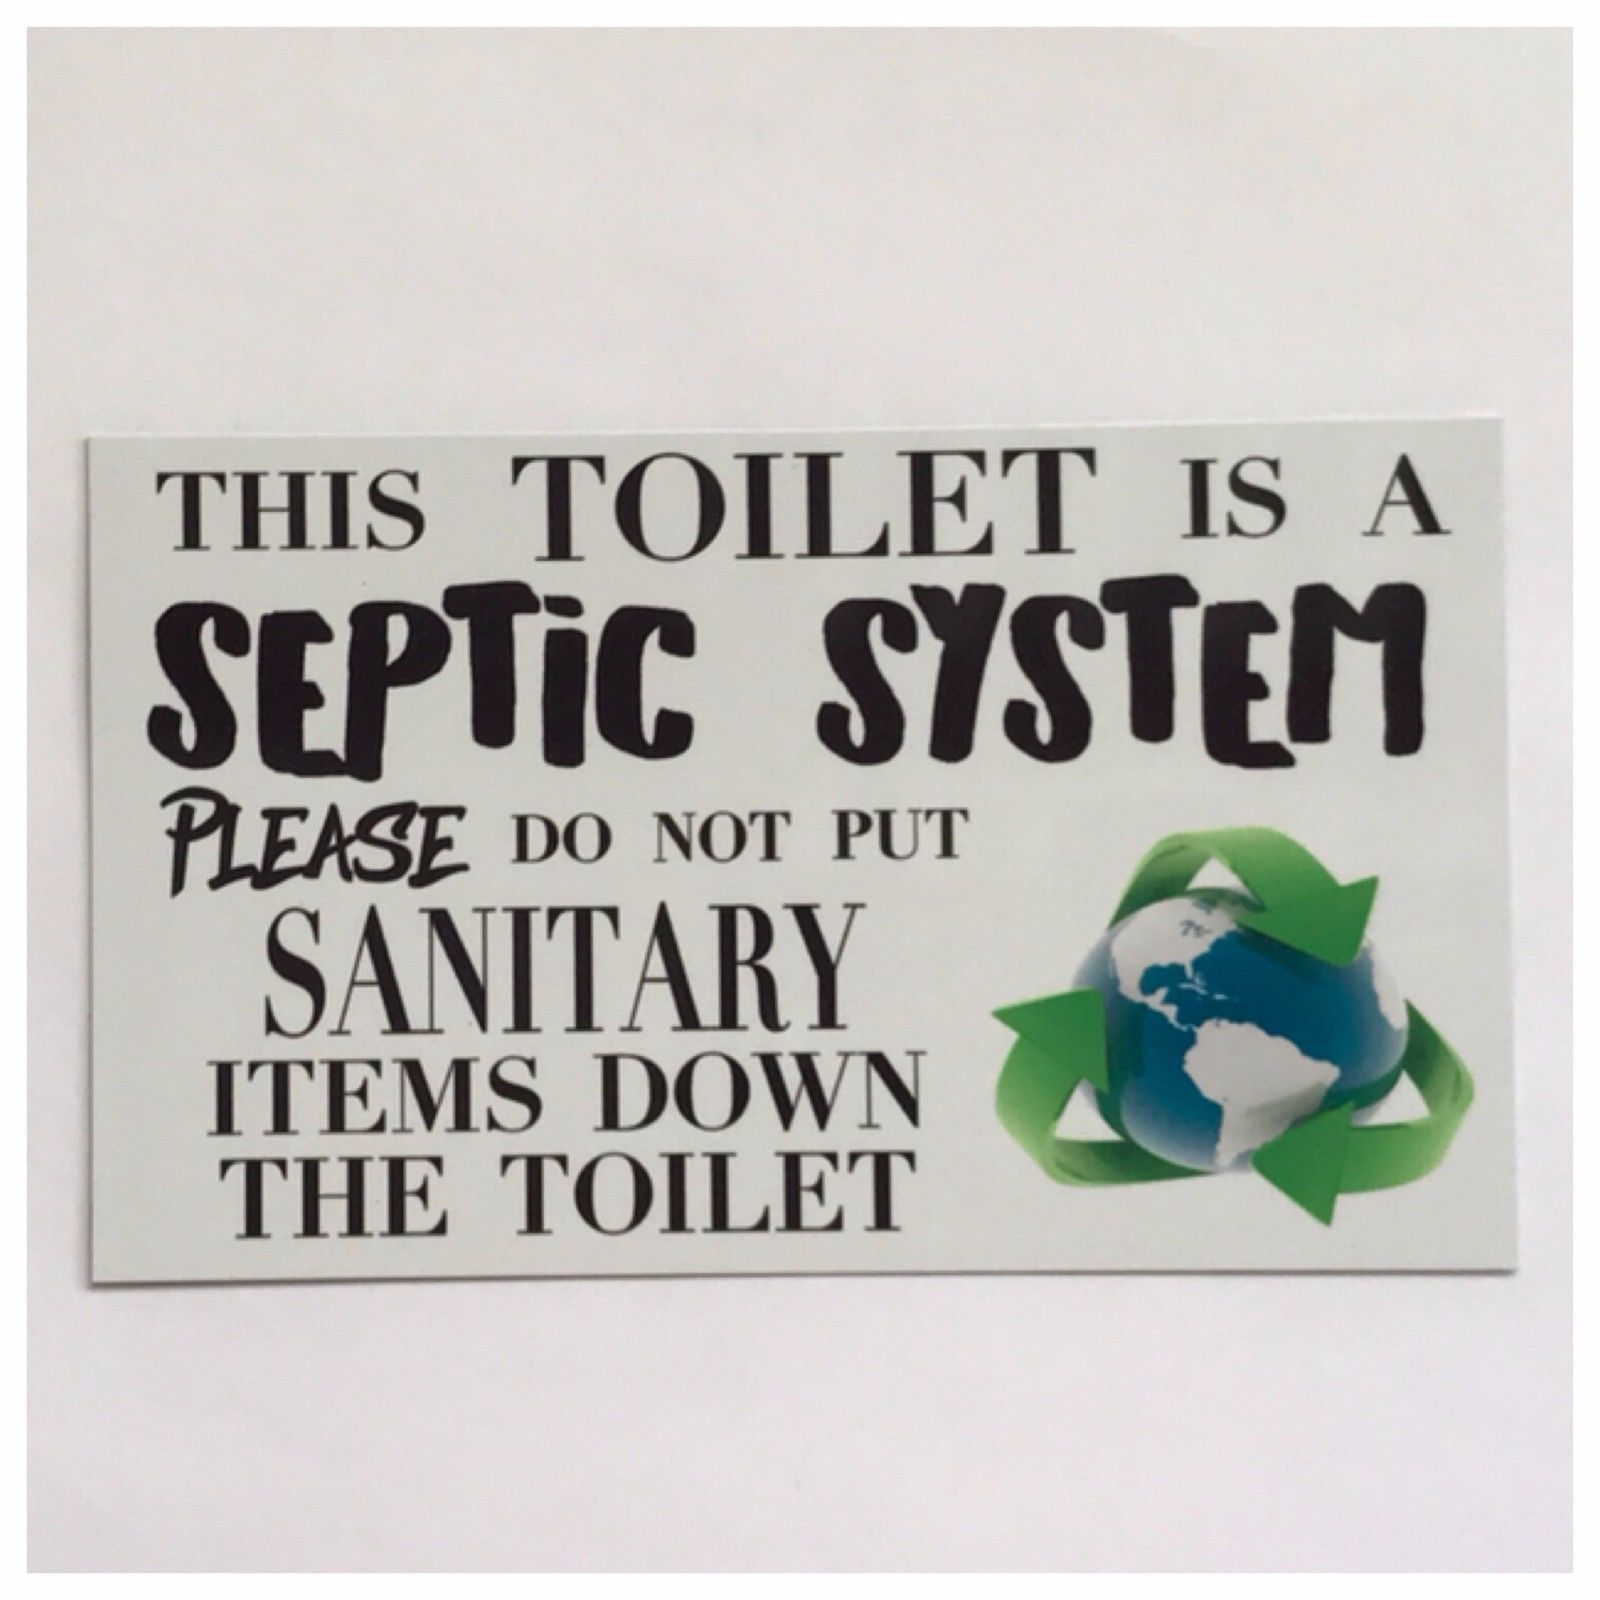 Toilet Septic System Bathroom Sign Plaques & Signs The Renmy Store